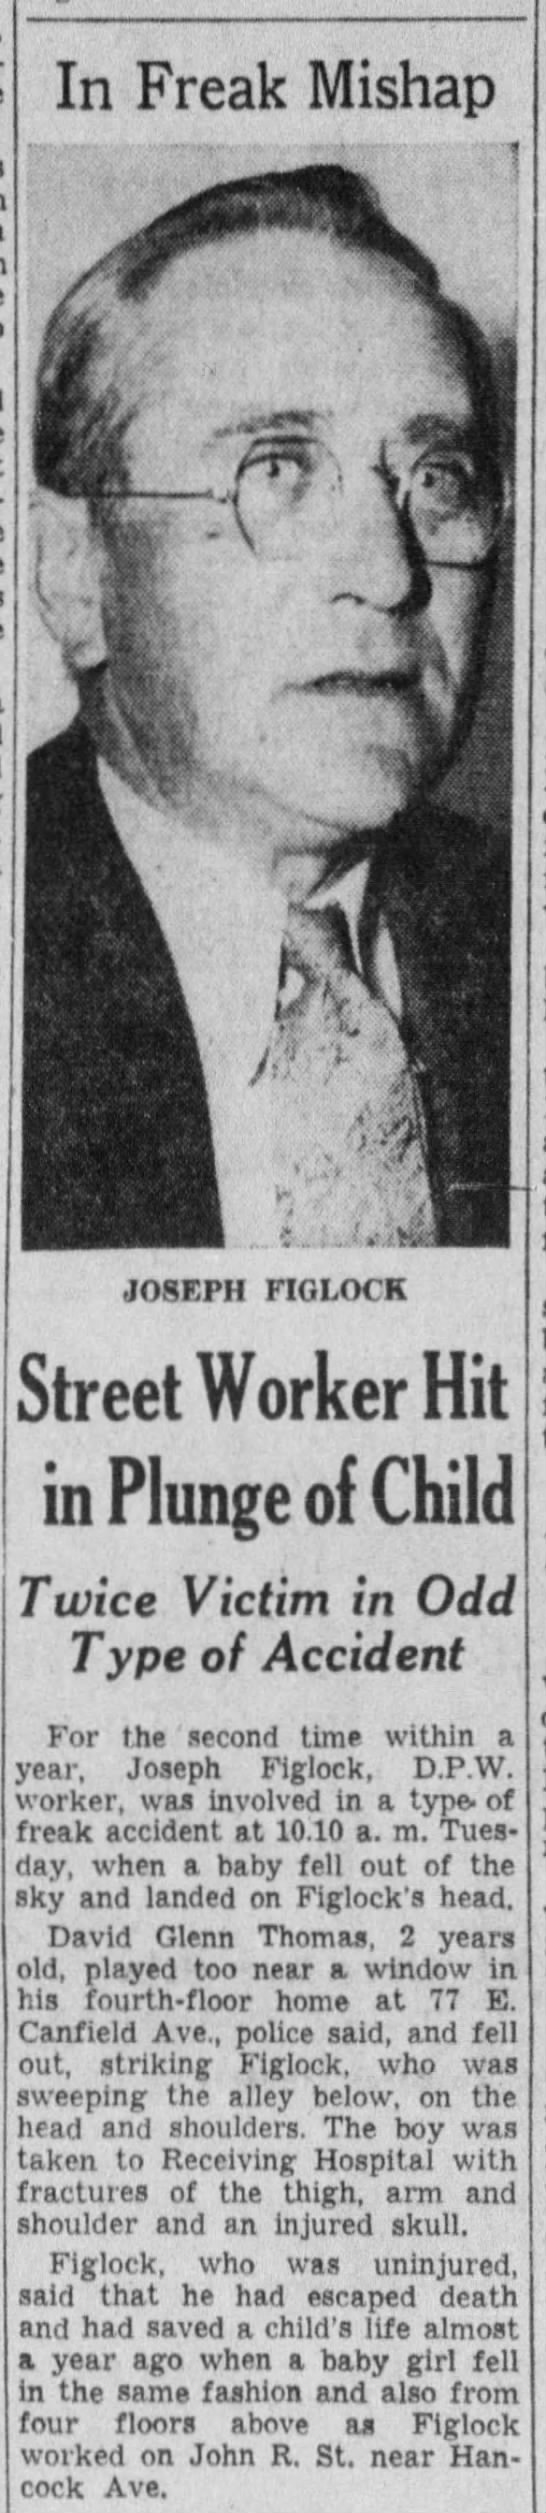 Image of Newsprint report on accidents with Joseph Figlock